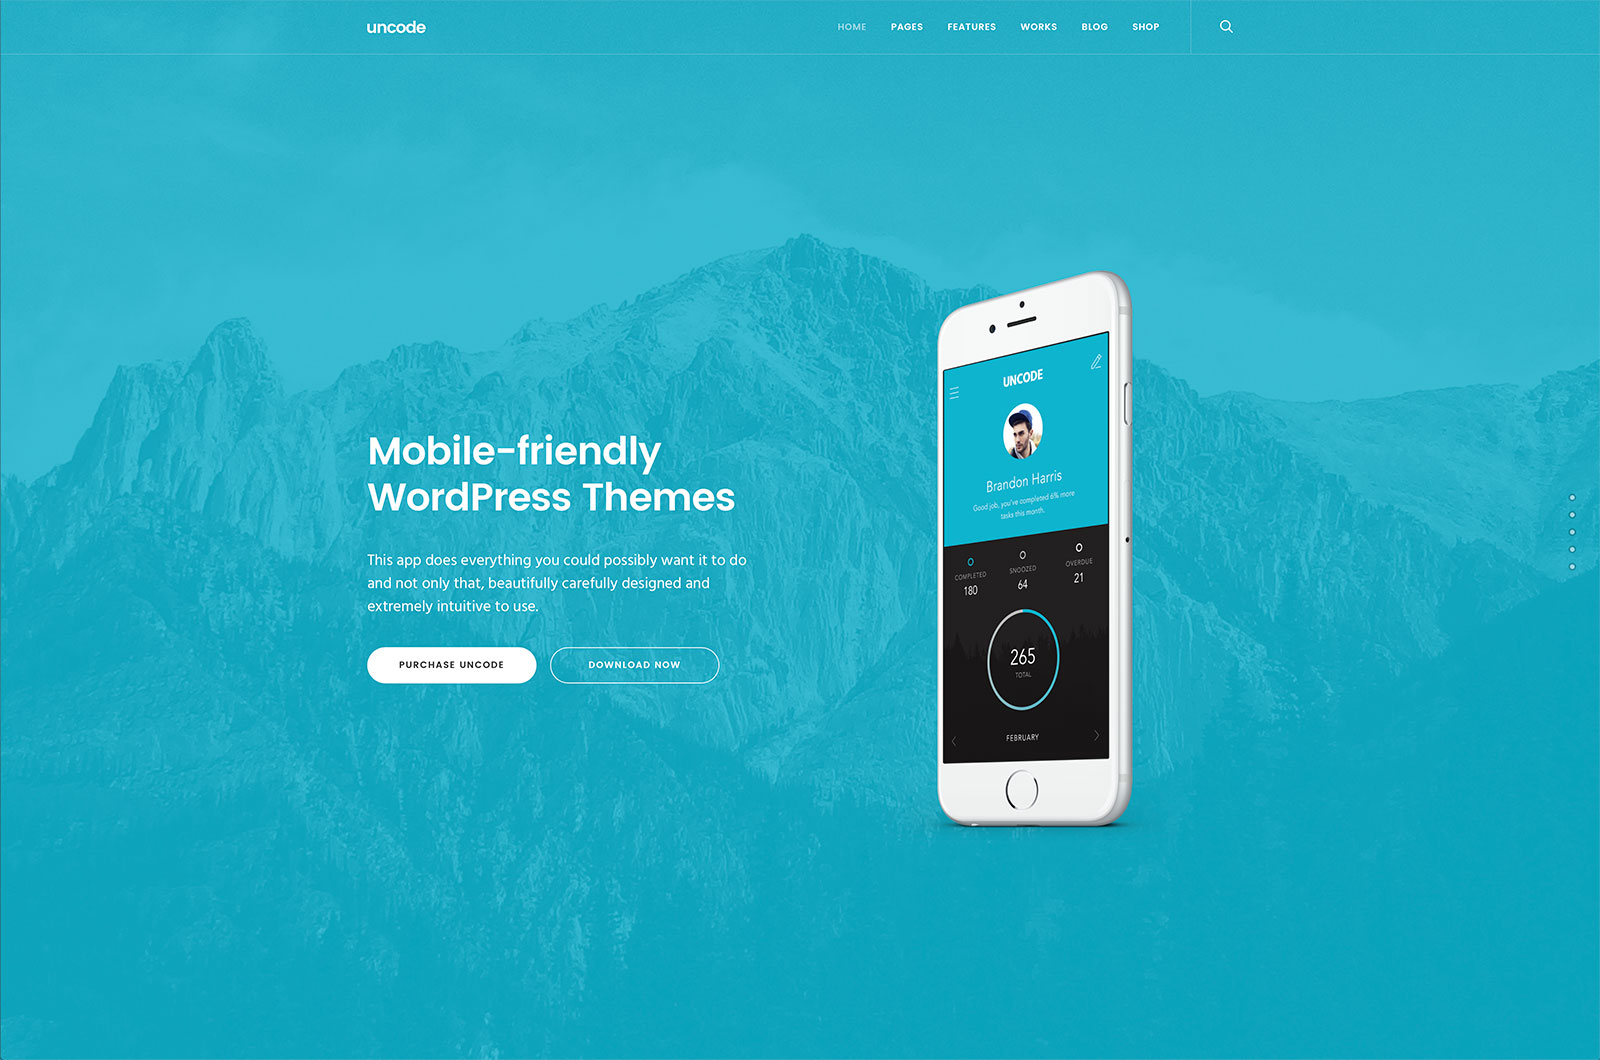 20+ Mobile Friendly WordPress Themes To Help With SEO And Website Usability On Mobile 2018